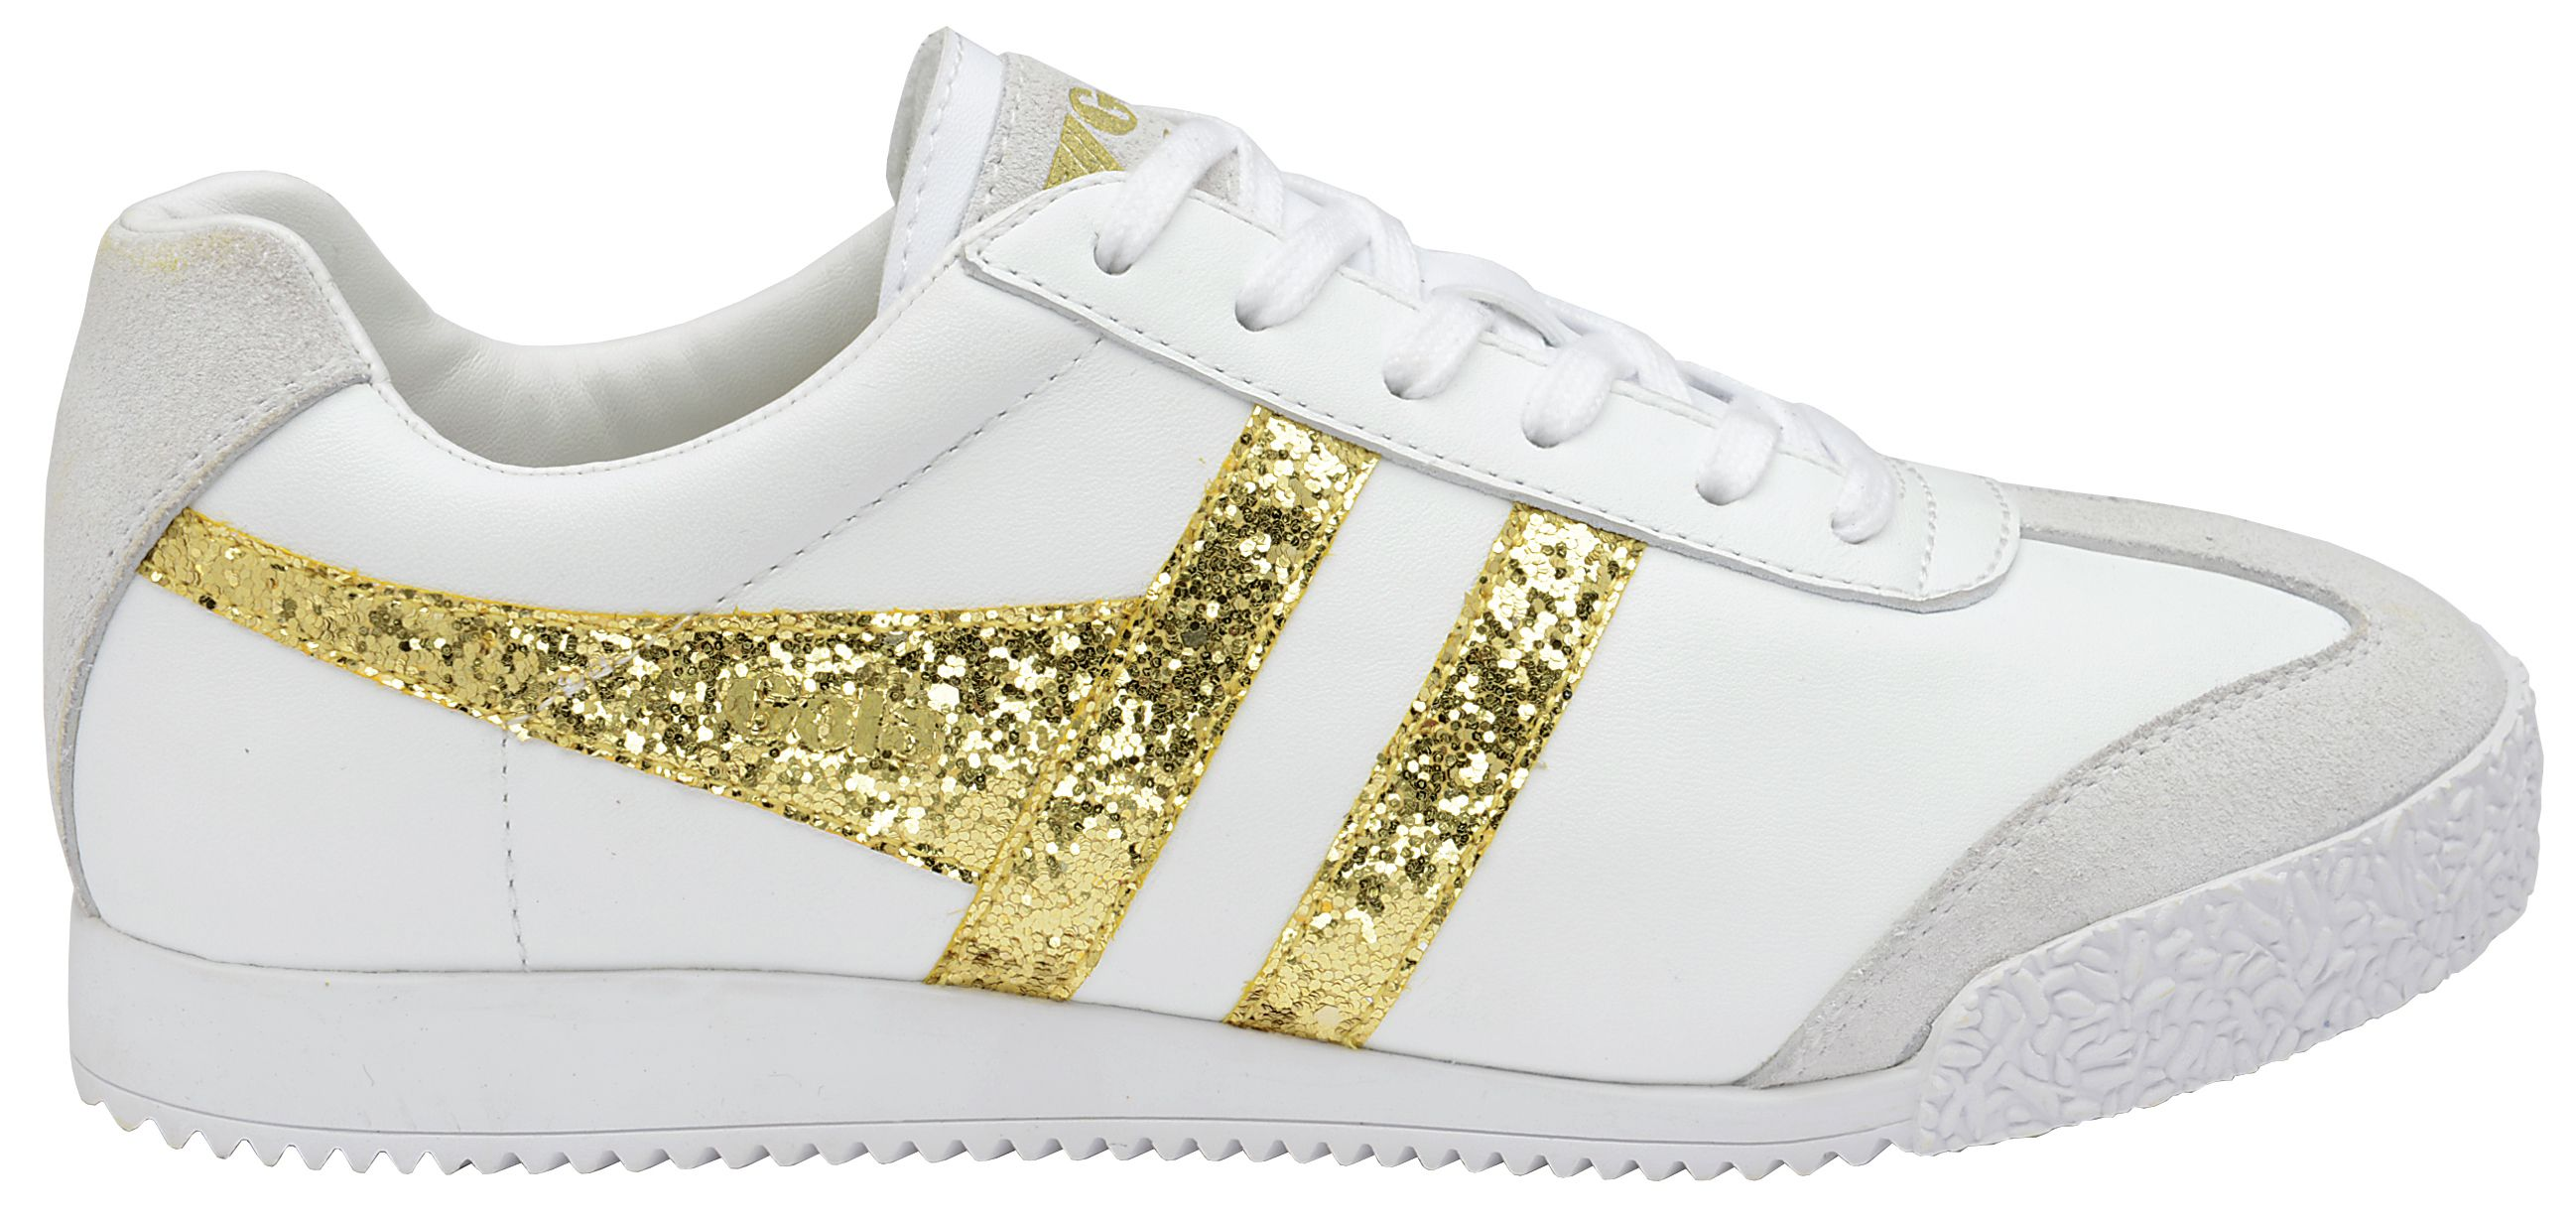 Gola Gola Harrier glitter lace up trainers, White Gold